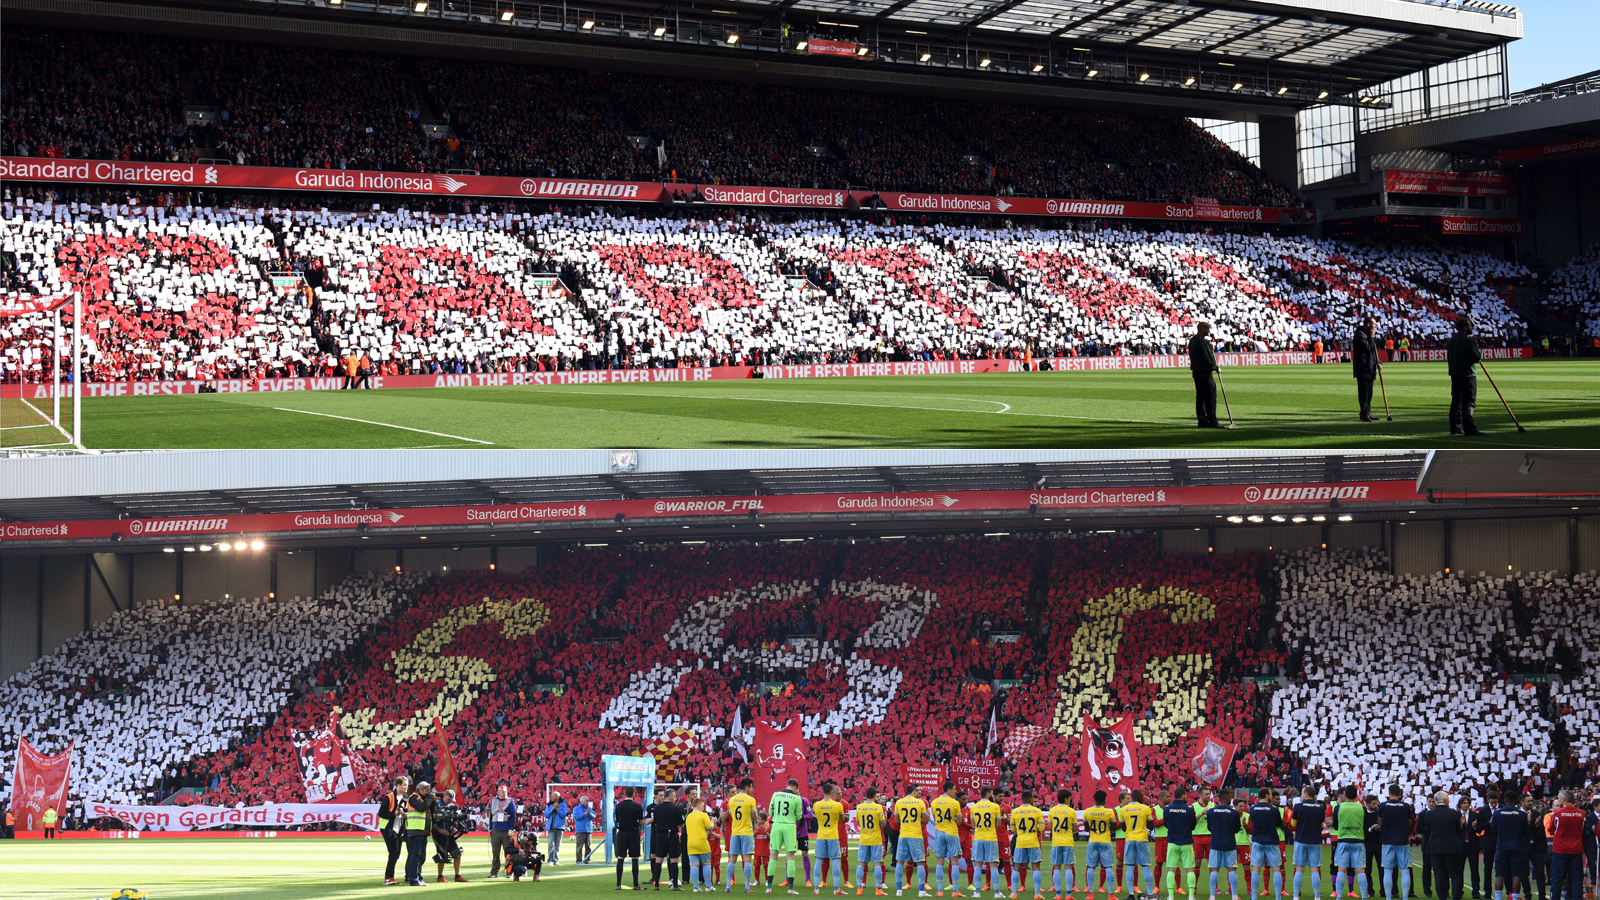 Fans at Anfield pay tribute to Steven Gerrard in his final home match as a Liverpool player in May 2015.